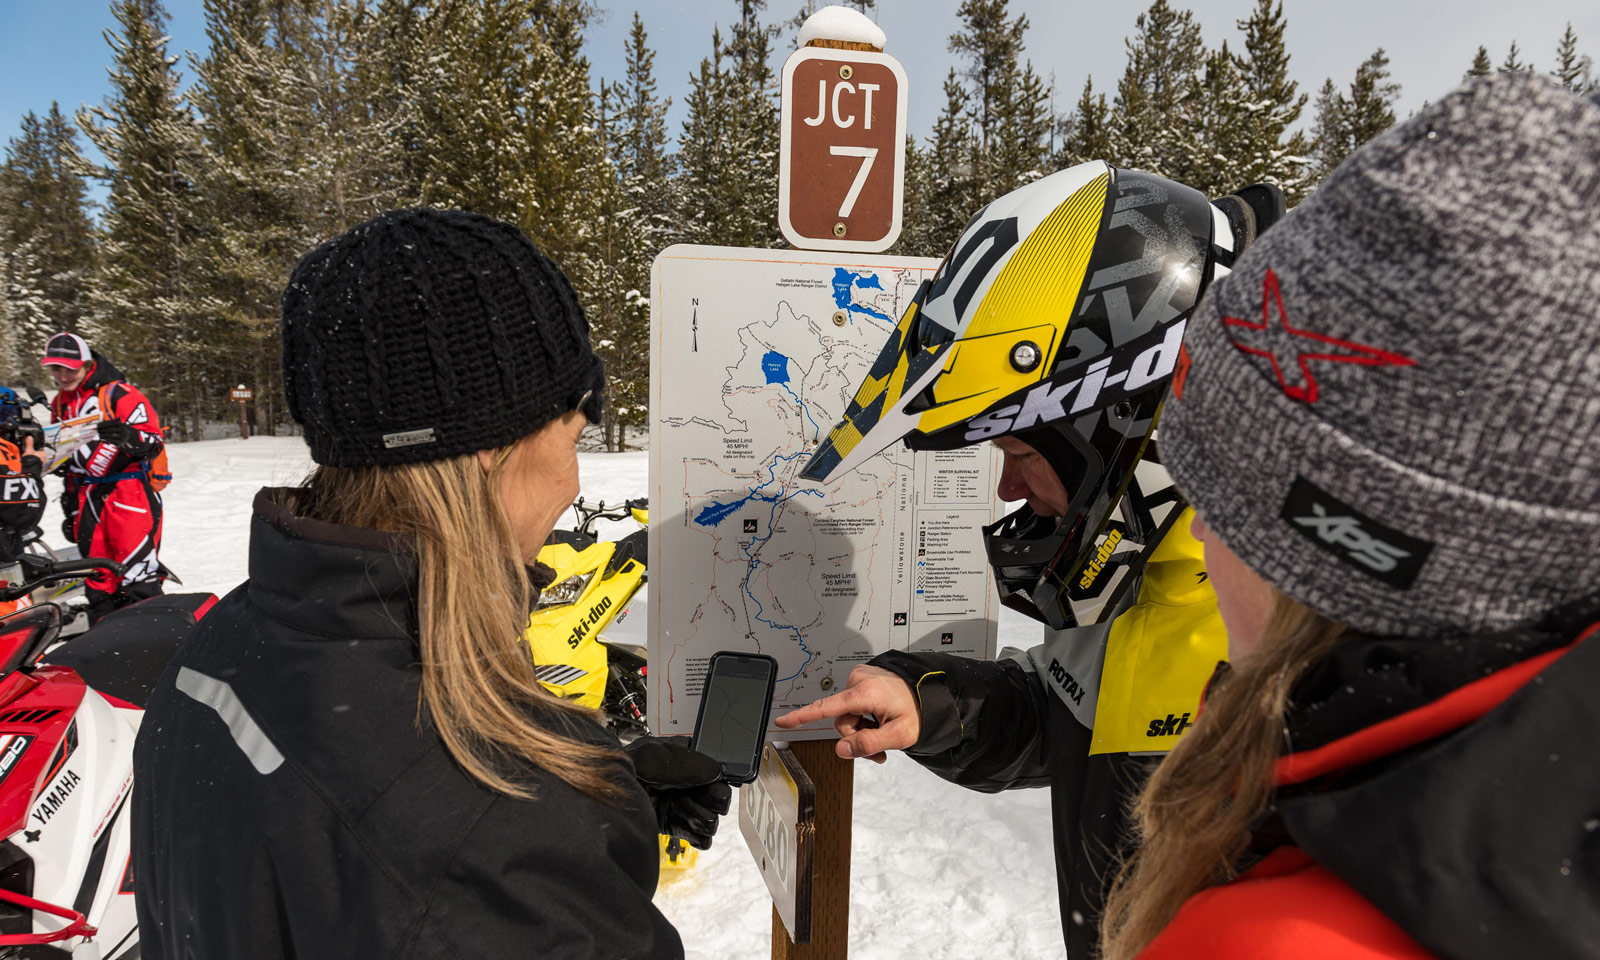 Snowmobilers discussing next trail ride